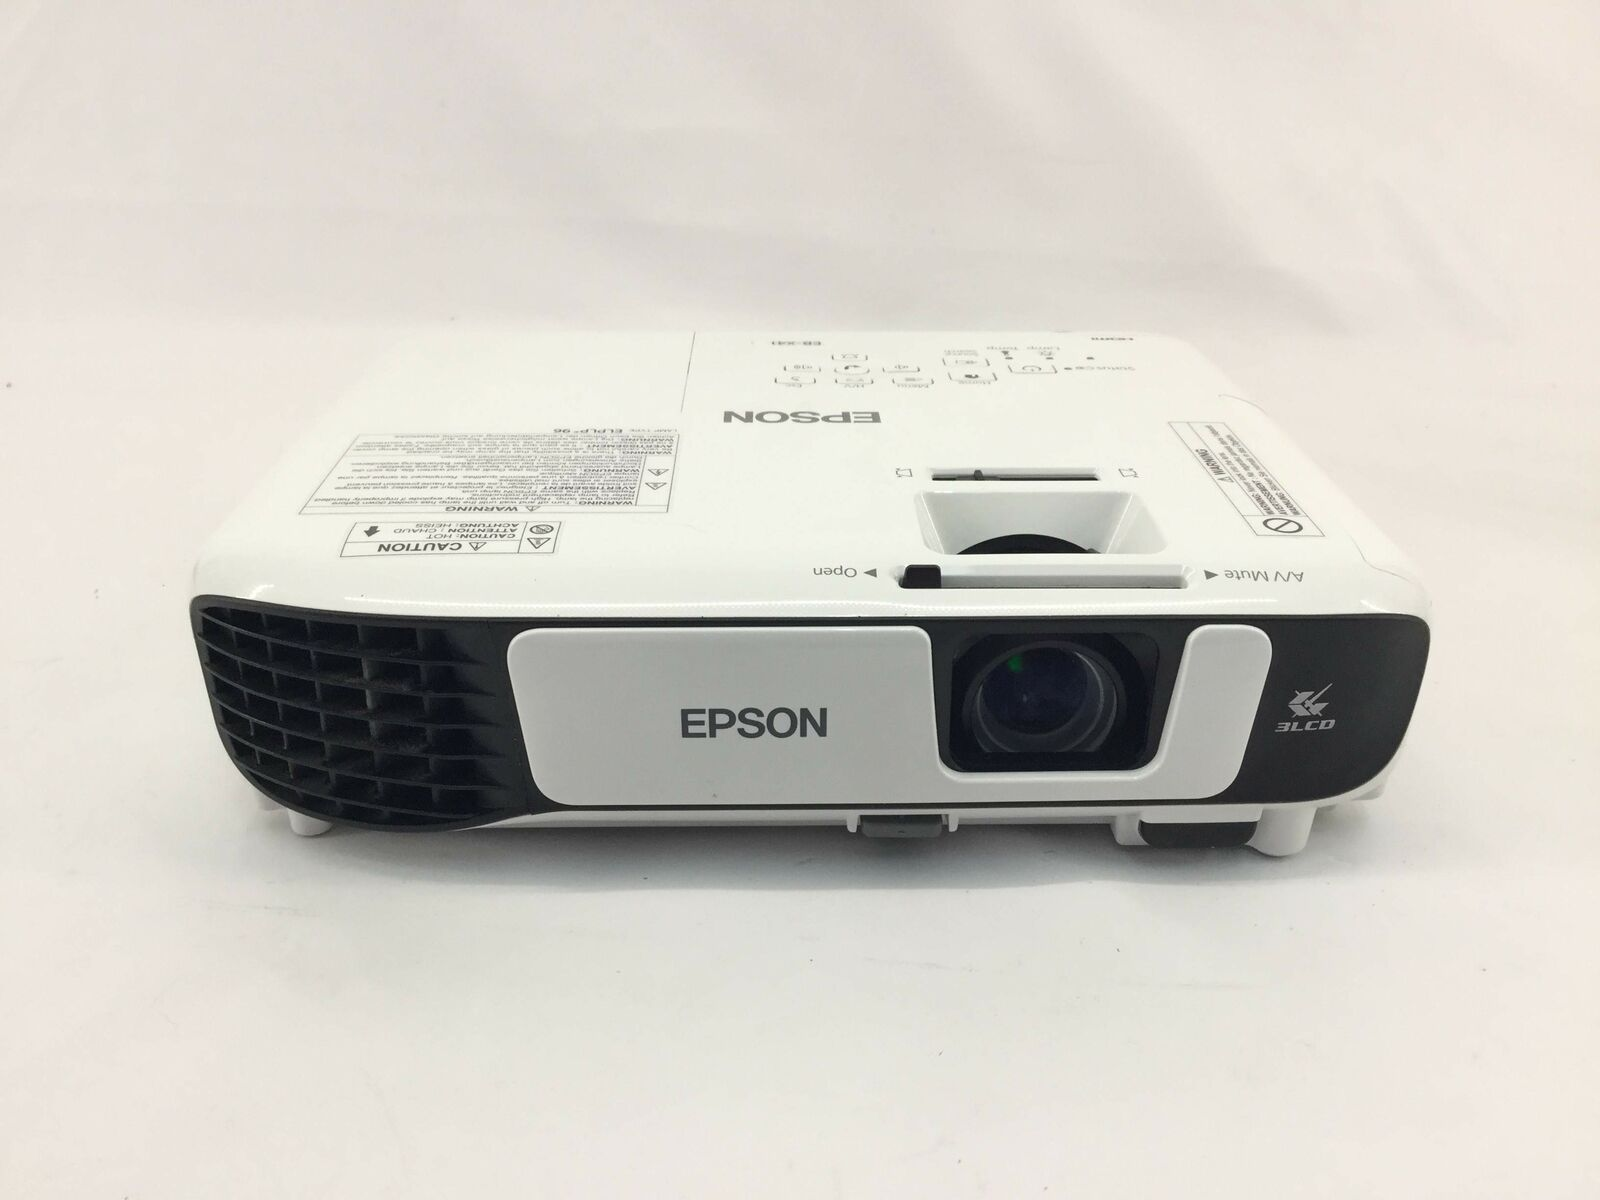 s l1600 - PROYECTOR POLIVALENTE EPSON 3LCD 5487926